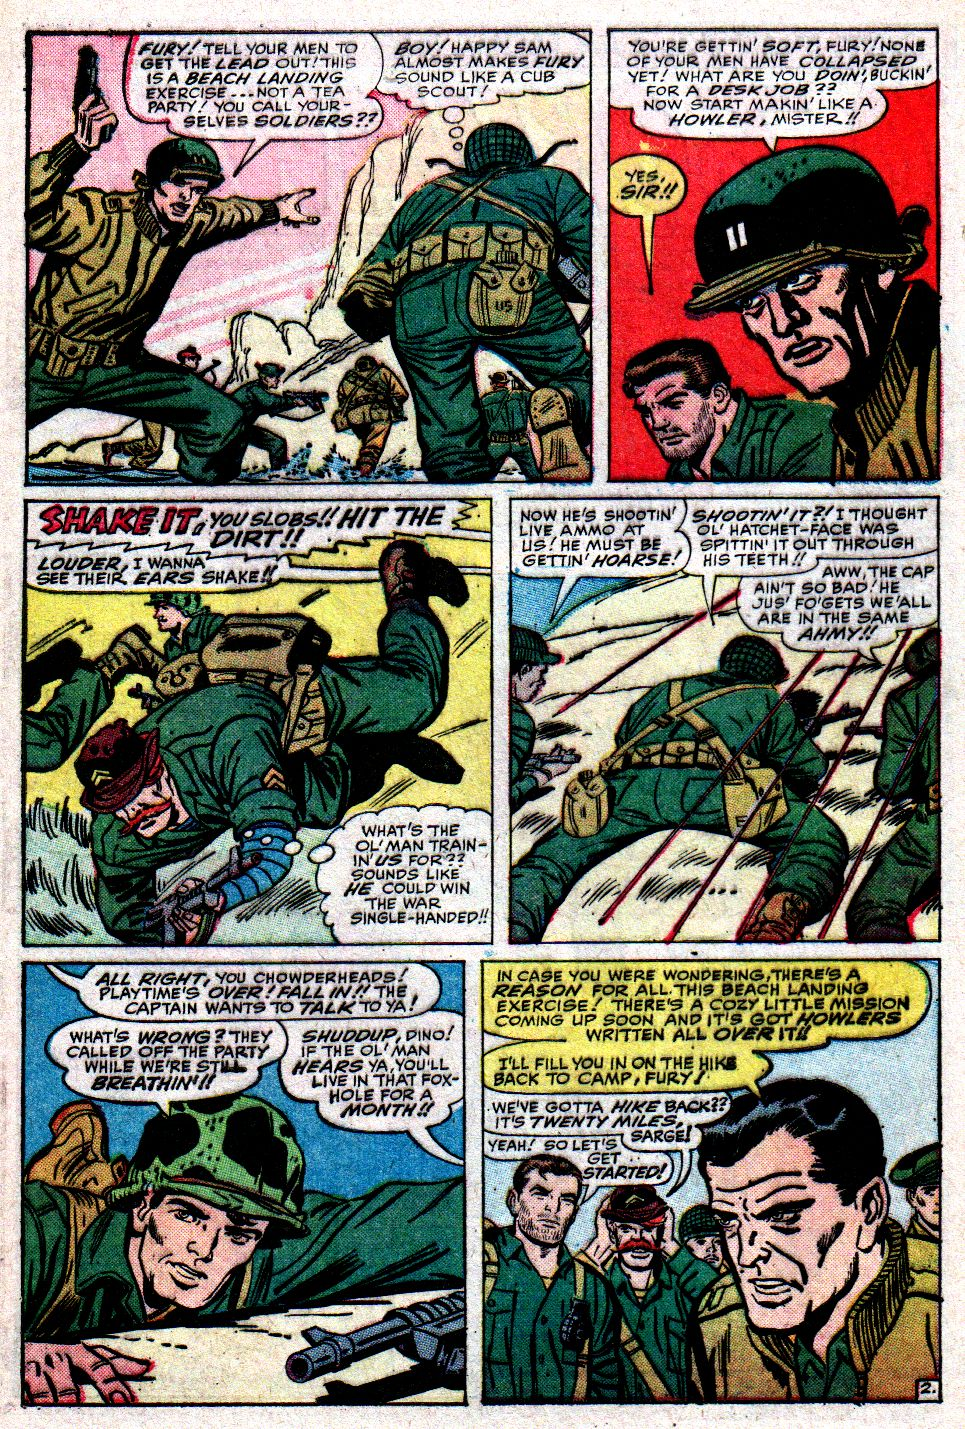 Read online Sgt. Fury comic -  Issue #10 - 4